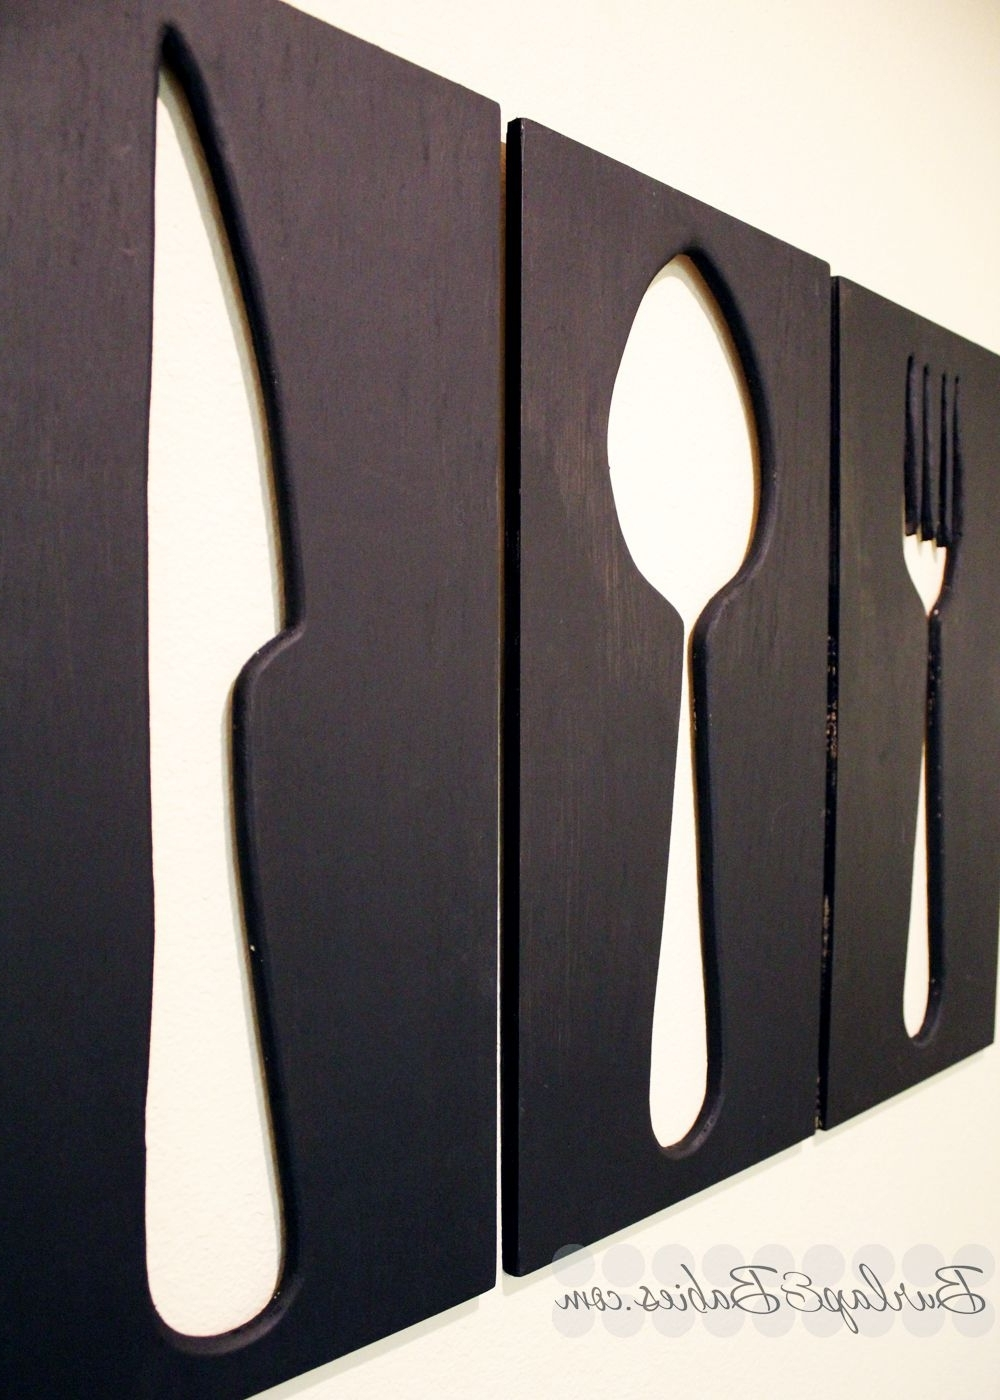 Utensils, Dining Room Wall Regarding Most Current Utensil Wall Art (View 13 of 15)